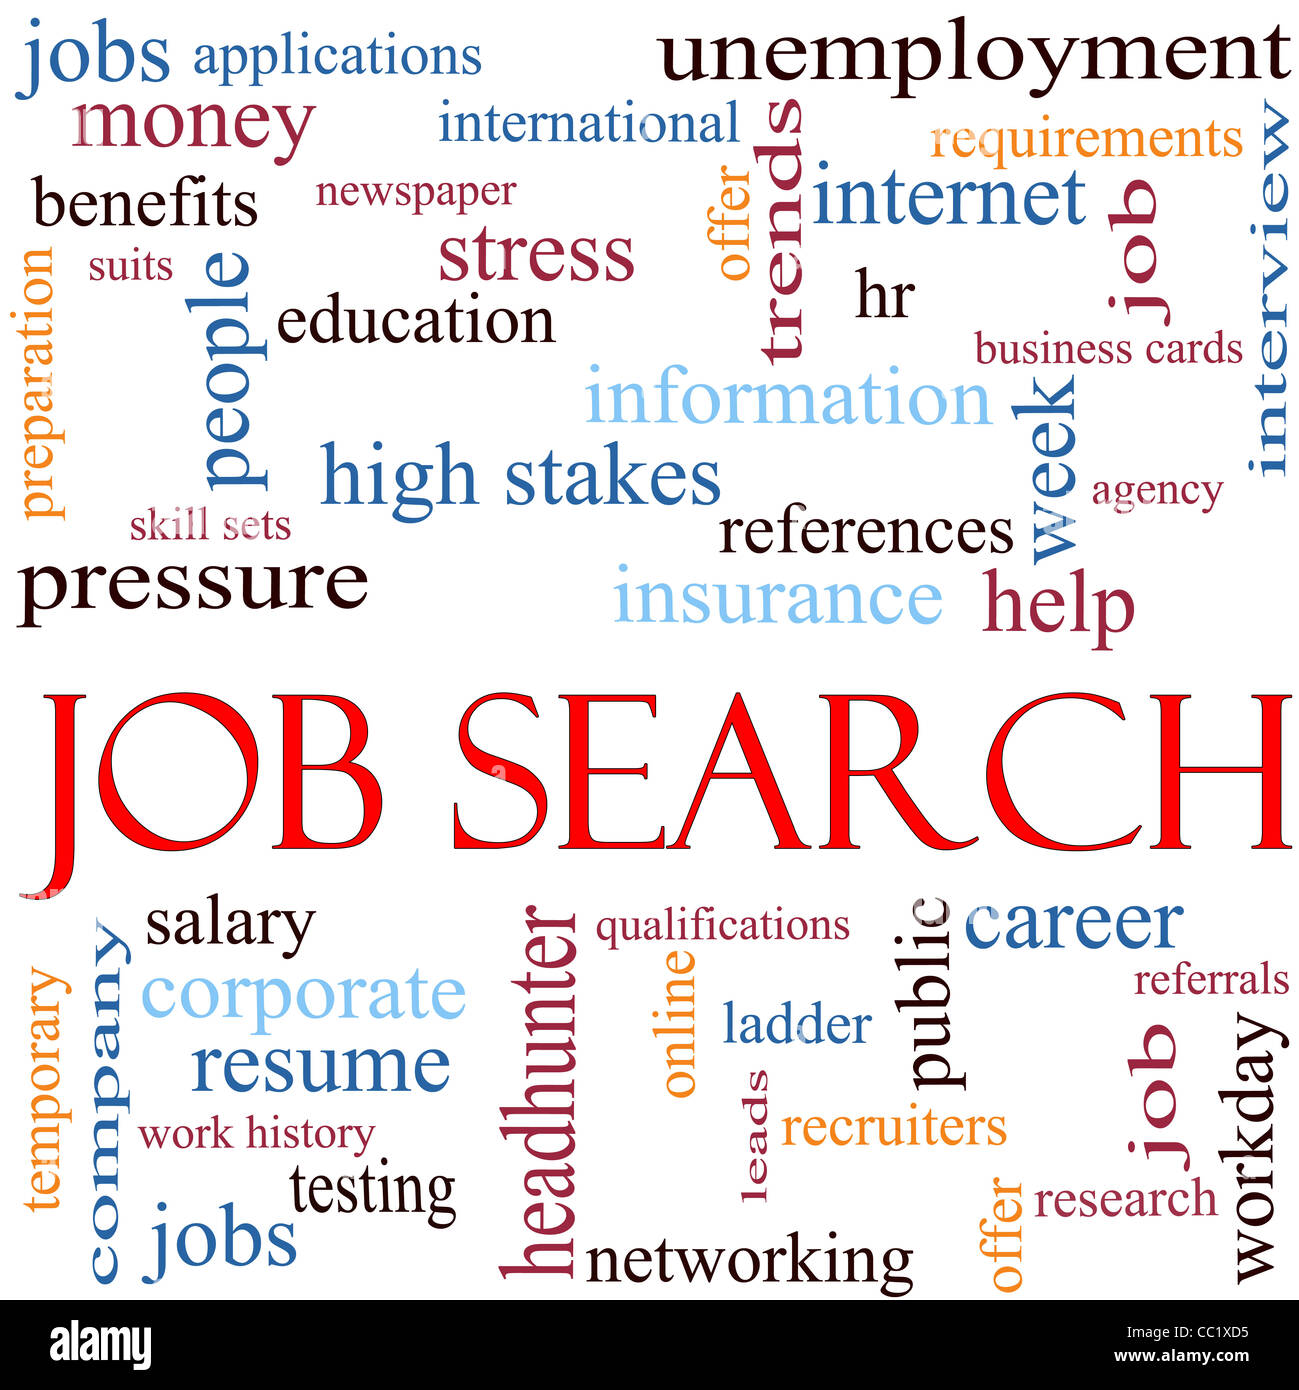 Job Search word cloud concept featuring terms such as networking ...